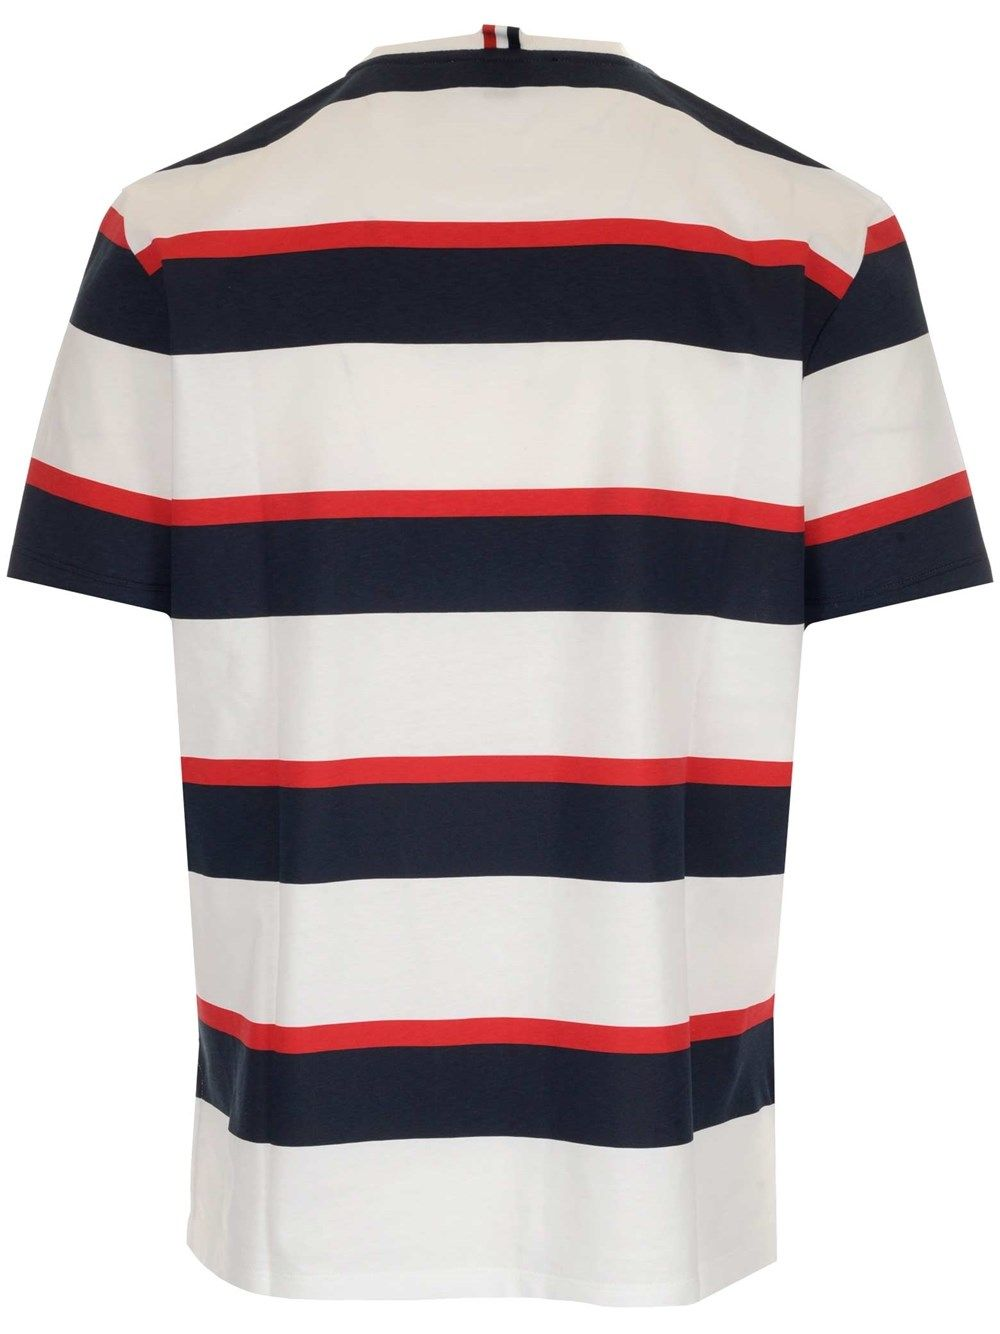 THOM BROWNE Cottons THOM BROWNE MEN'S WHITE OTHER MATERIALS T-SHIRT